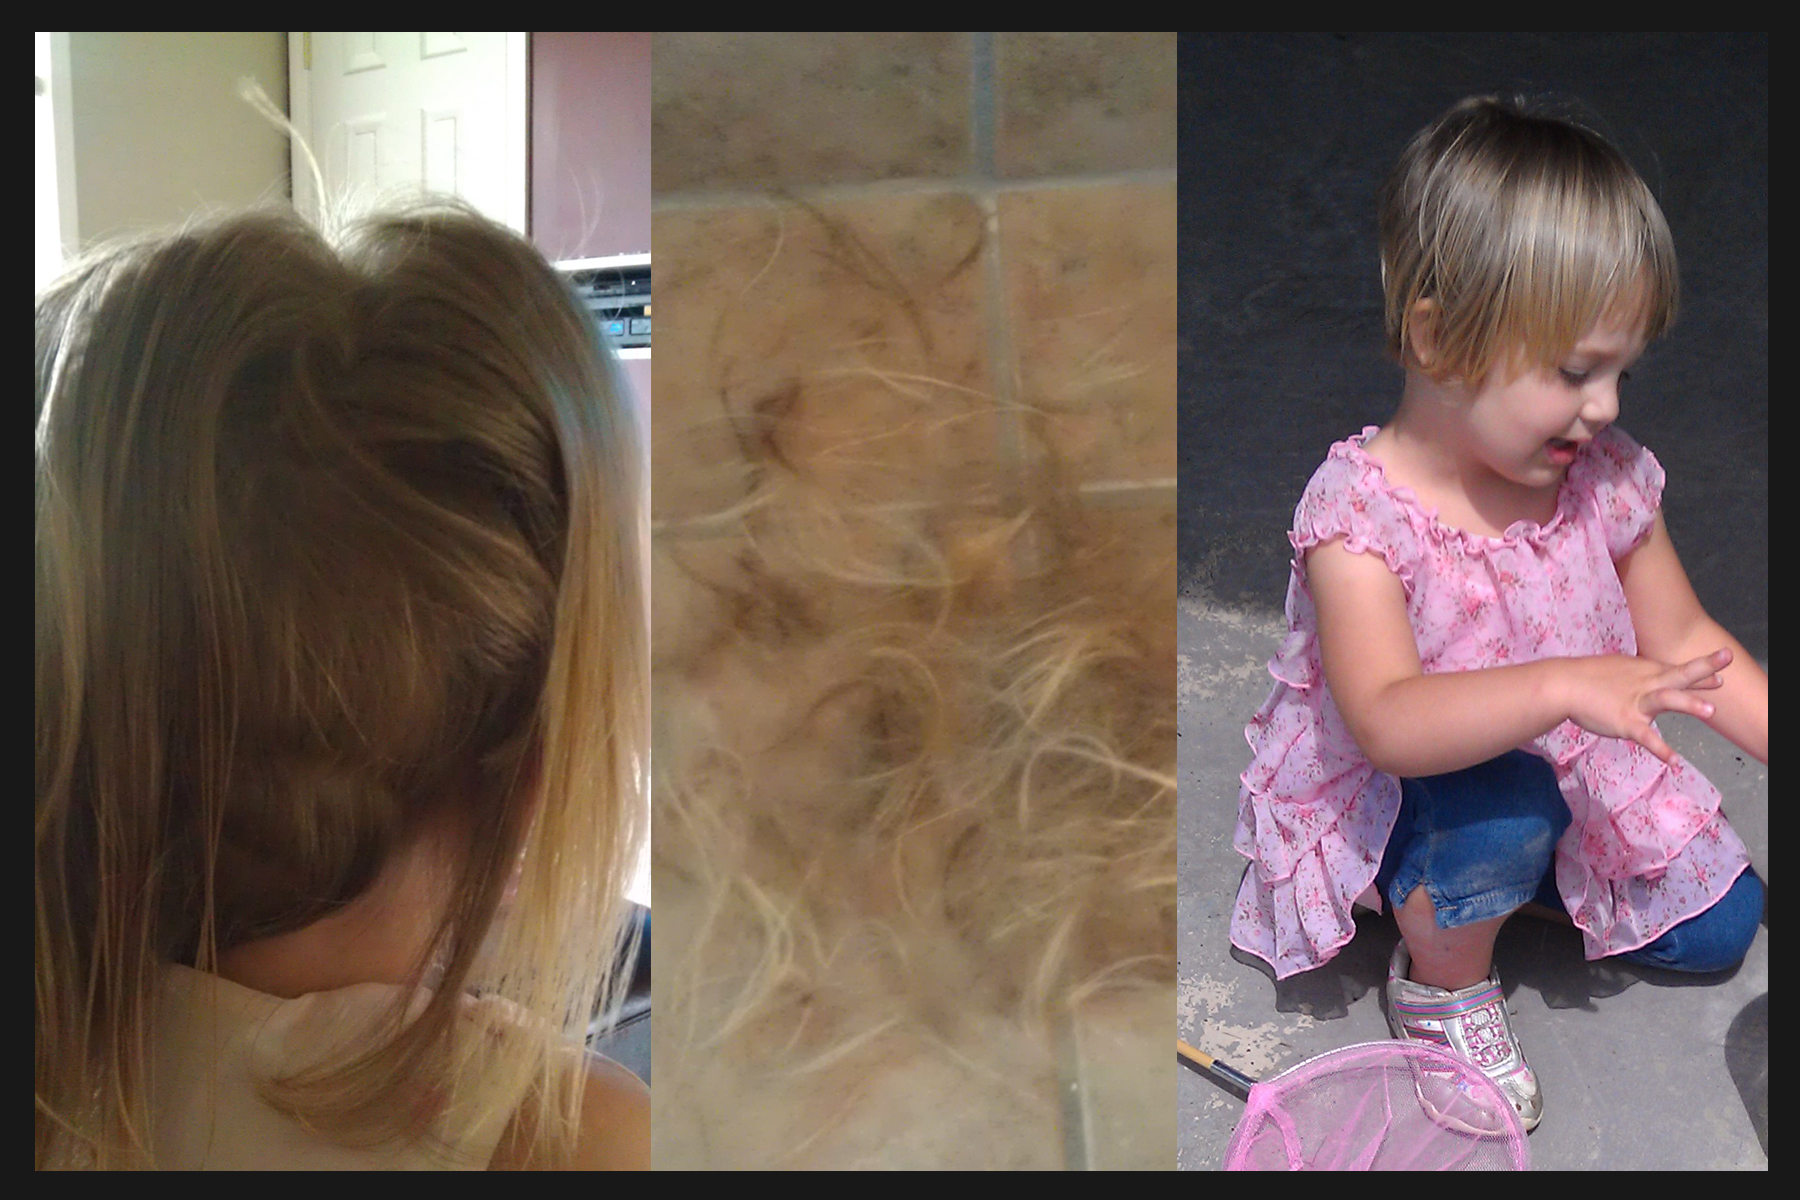 3 year old Jaiden decided to take matters into her own hands when it came to a new hairstyle.